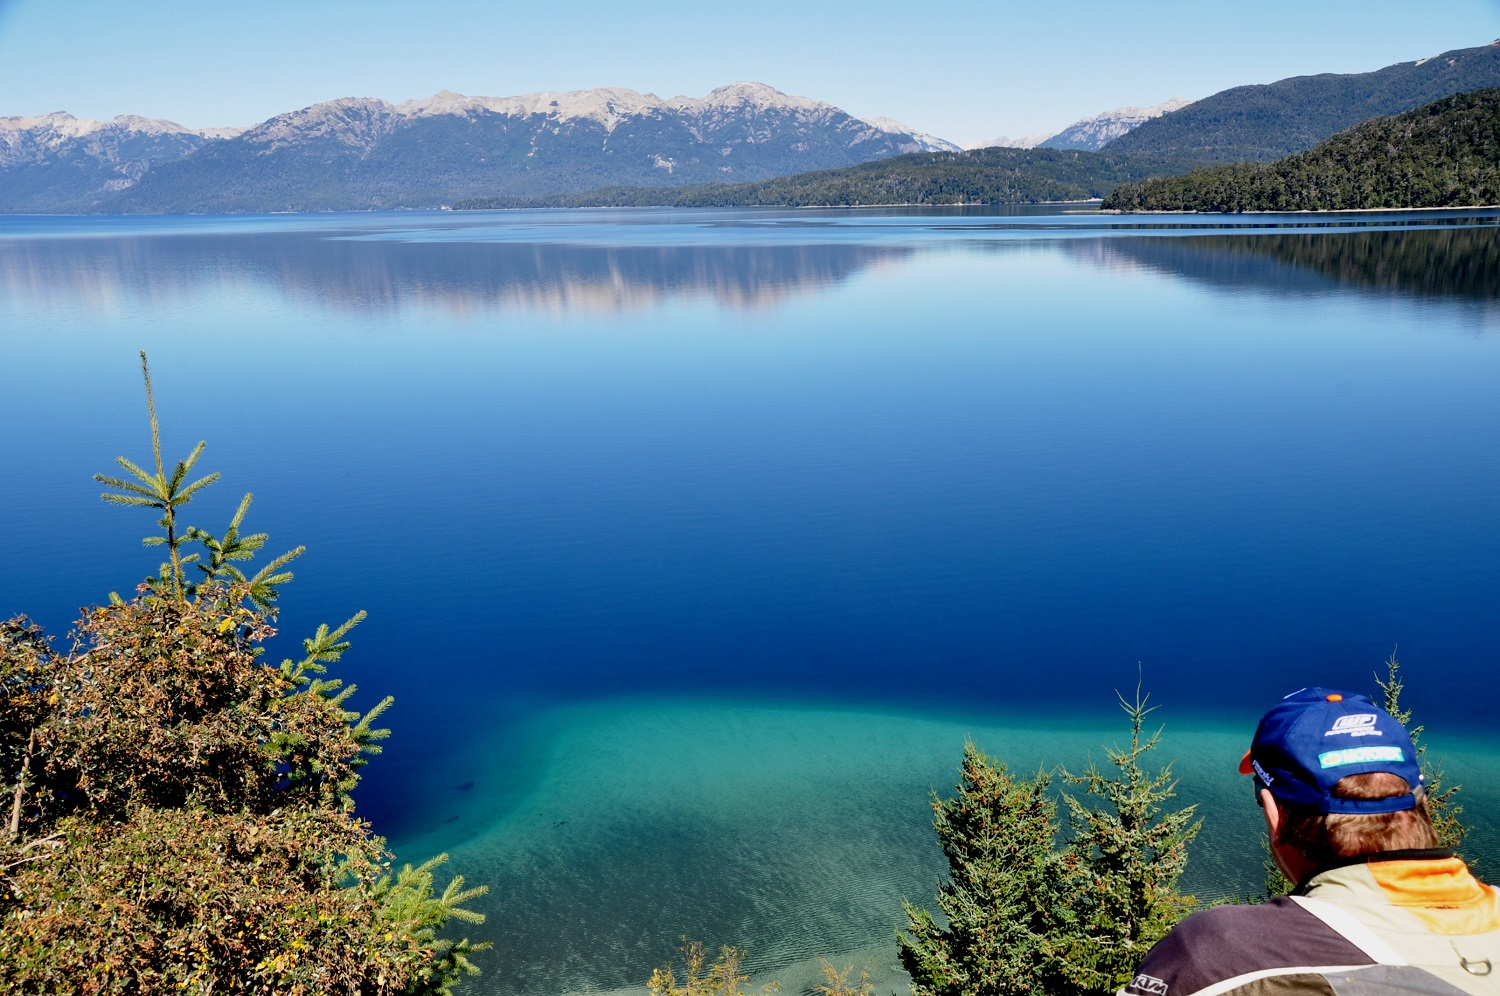 Einer der sieben Seen: Lago Nahuel Huapi in Argentinien | One of the seven lakes: Lago Nahuel Huapi in Argentina